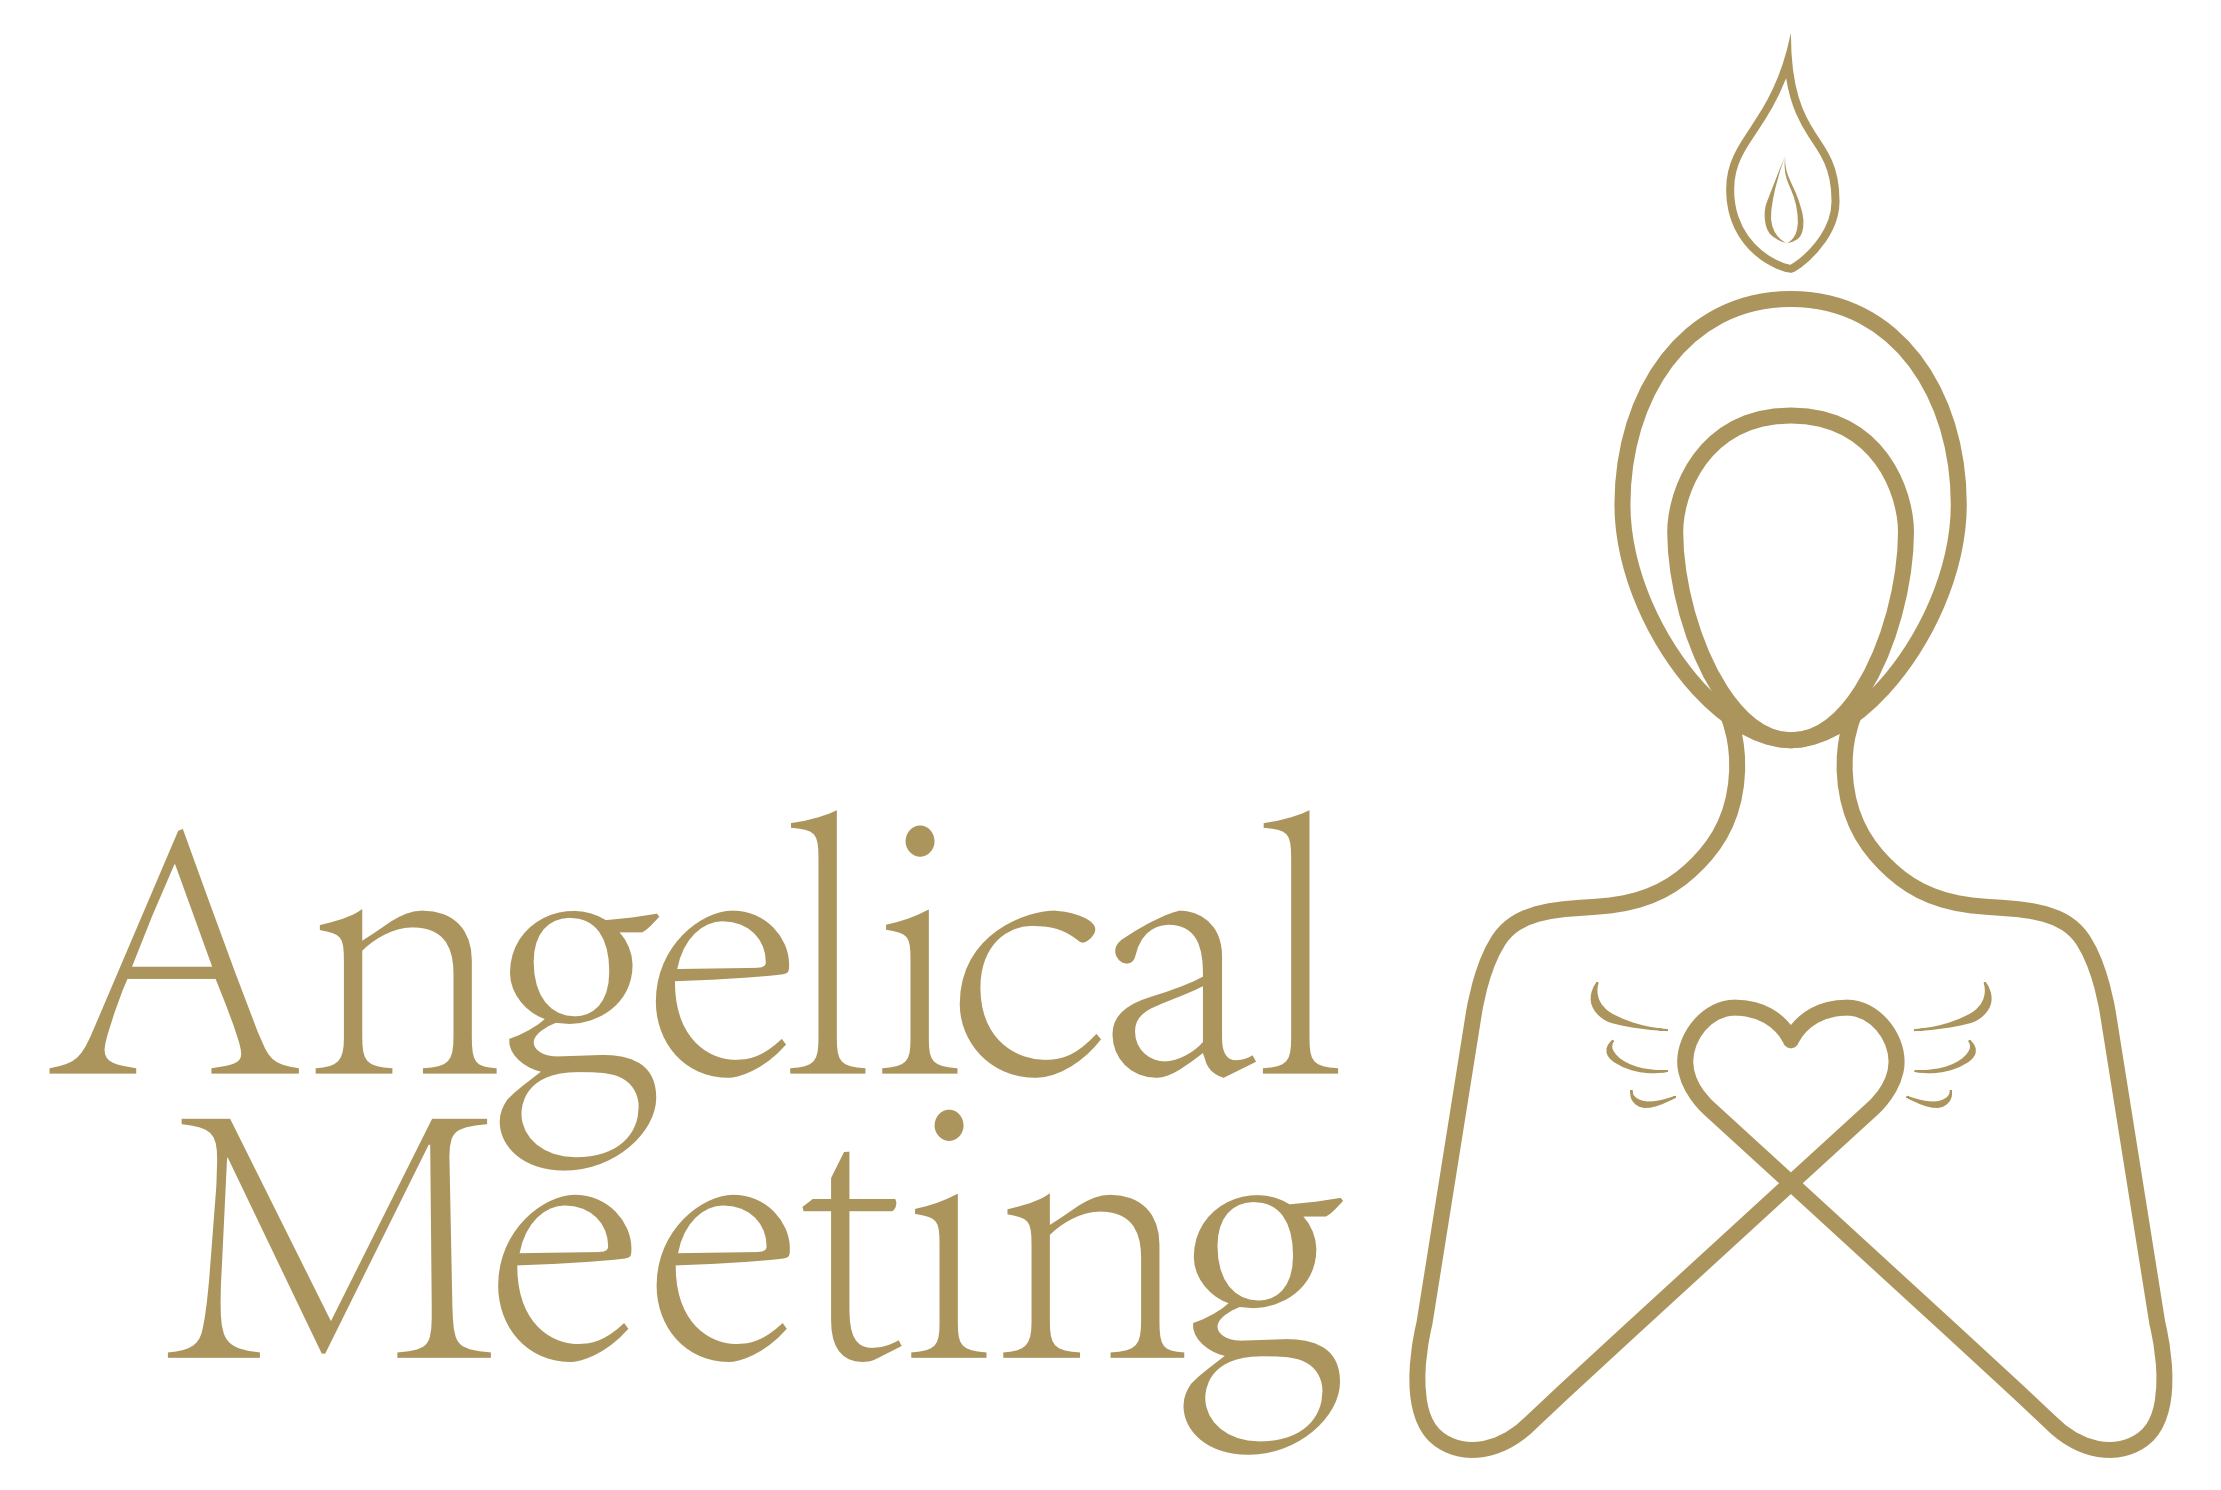 Angelical Meeting